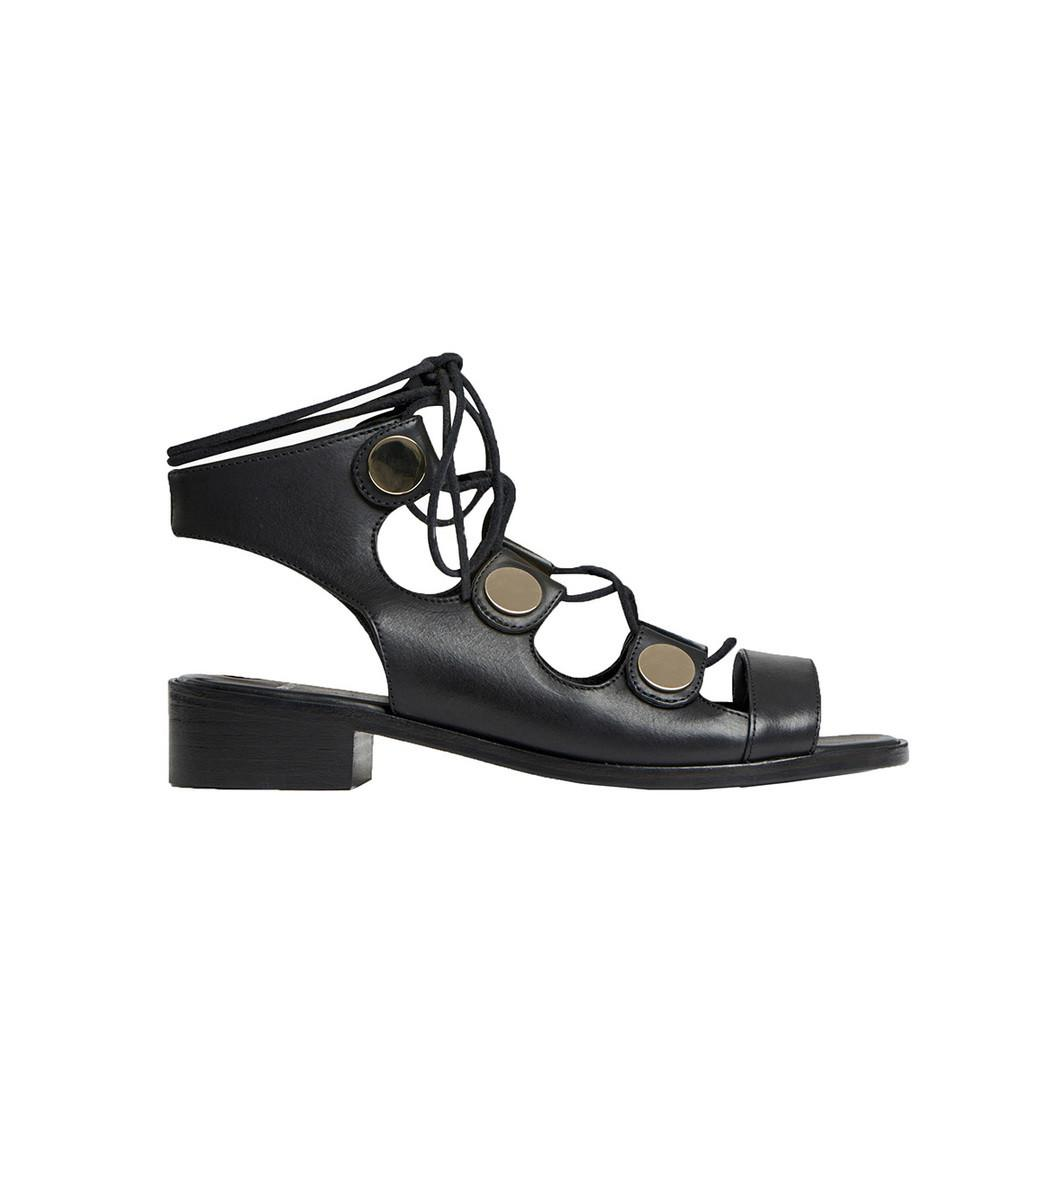 3e9082a42d69d4 Lyst - Pierre Hardy Black Penny 30 Mm Sandal in Black